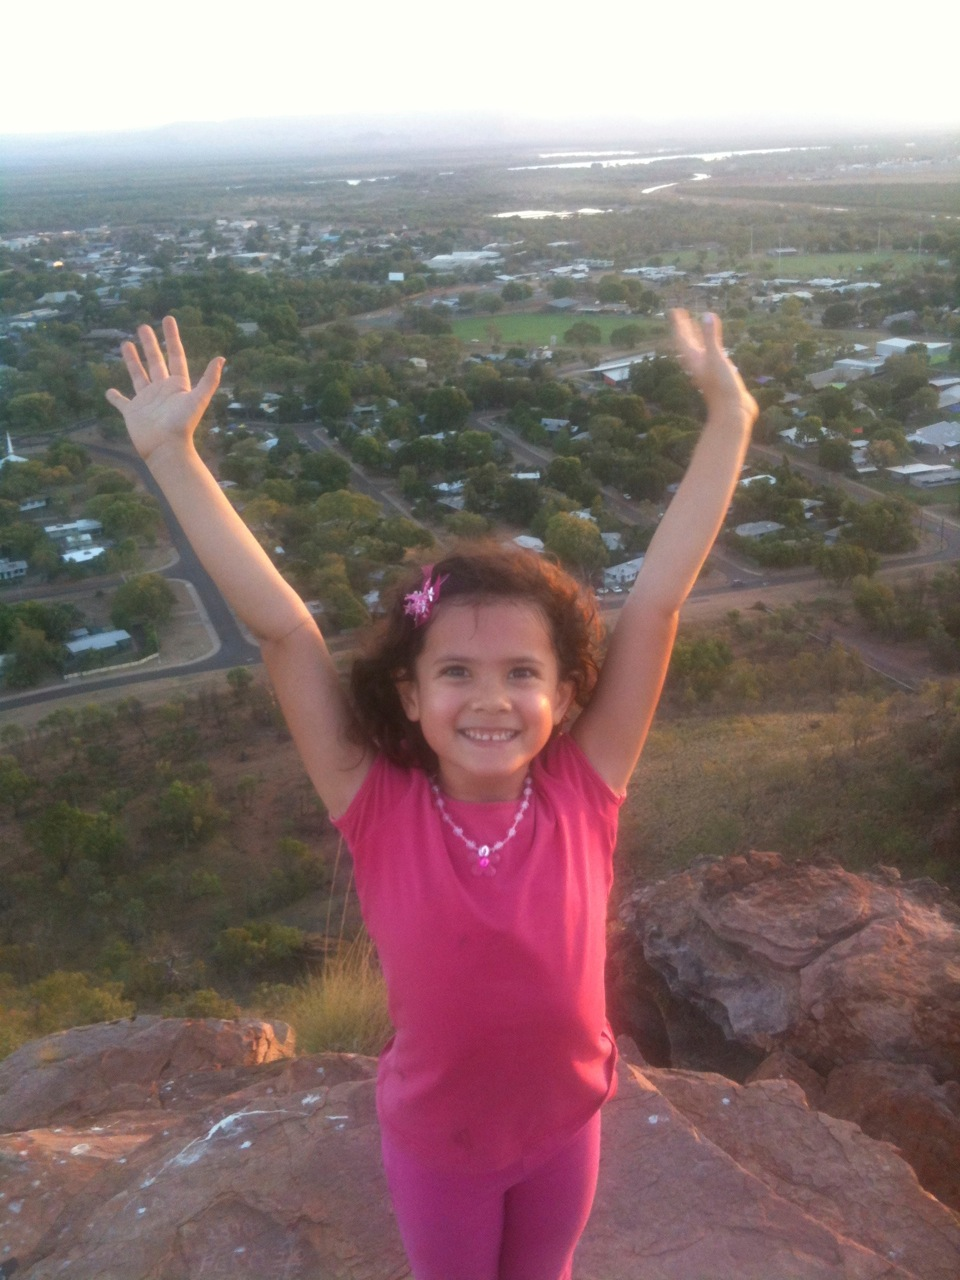 I promised Marisah when she turned six we would walk to the top of Kelly's Knob in Kununurra just like I did with Ariya. Here she is celebrating being on top of the world! A few weeks afterwards I managed to convince Seerung that we should all go as a family. Lugging Jacob up that hill was hard work but well worth it.